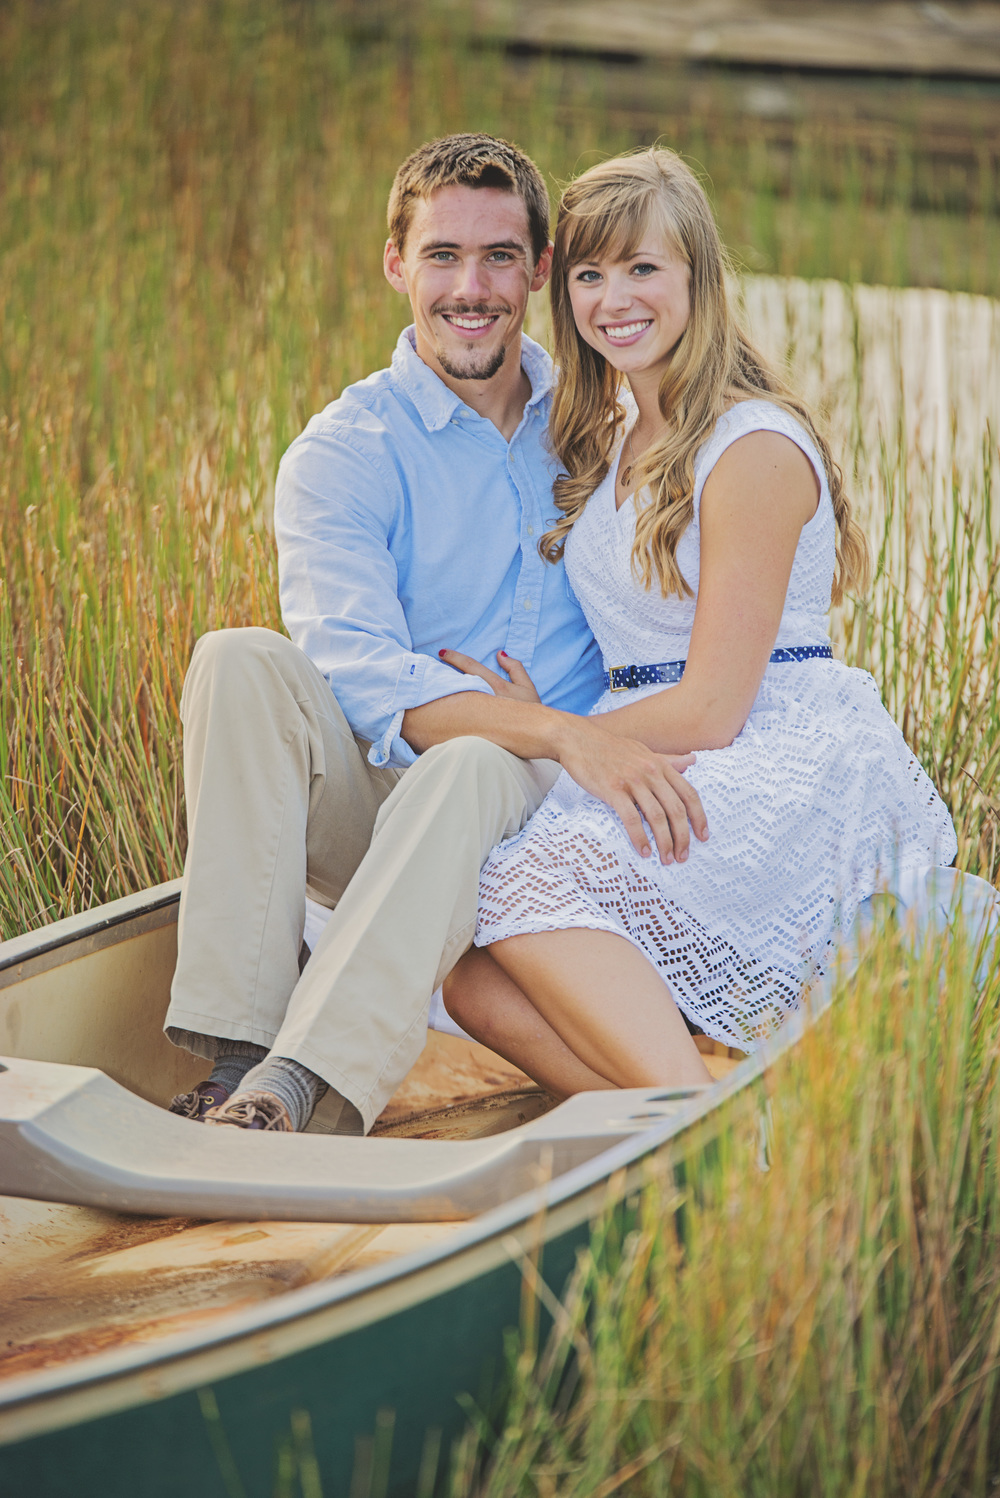 garden_dock_quilt_fun_engagement_session_lynchburg_va024.jpg